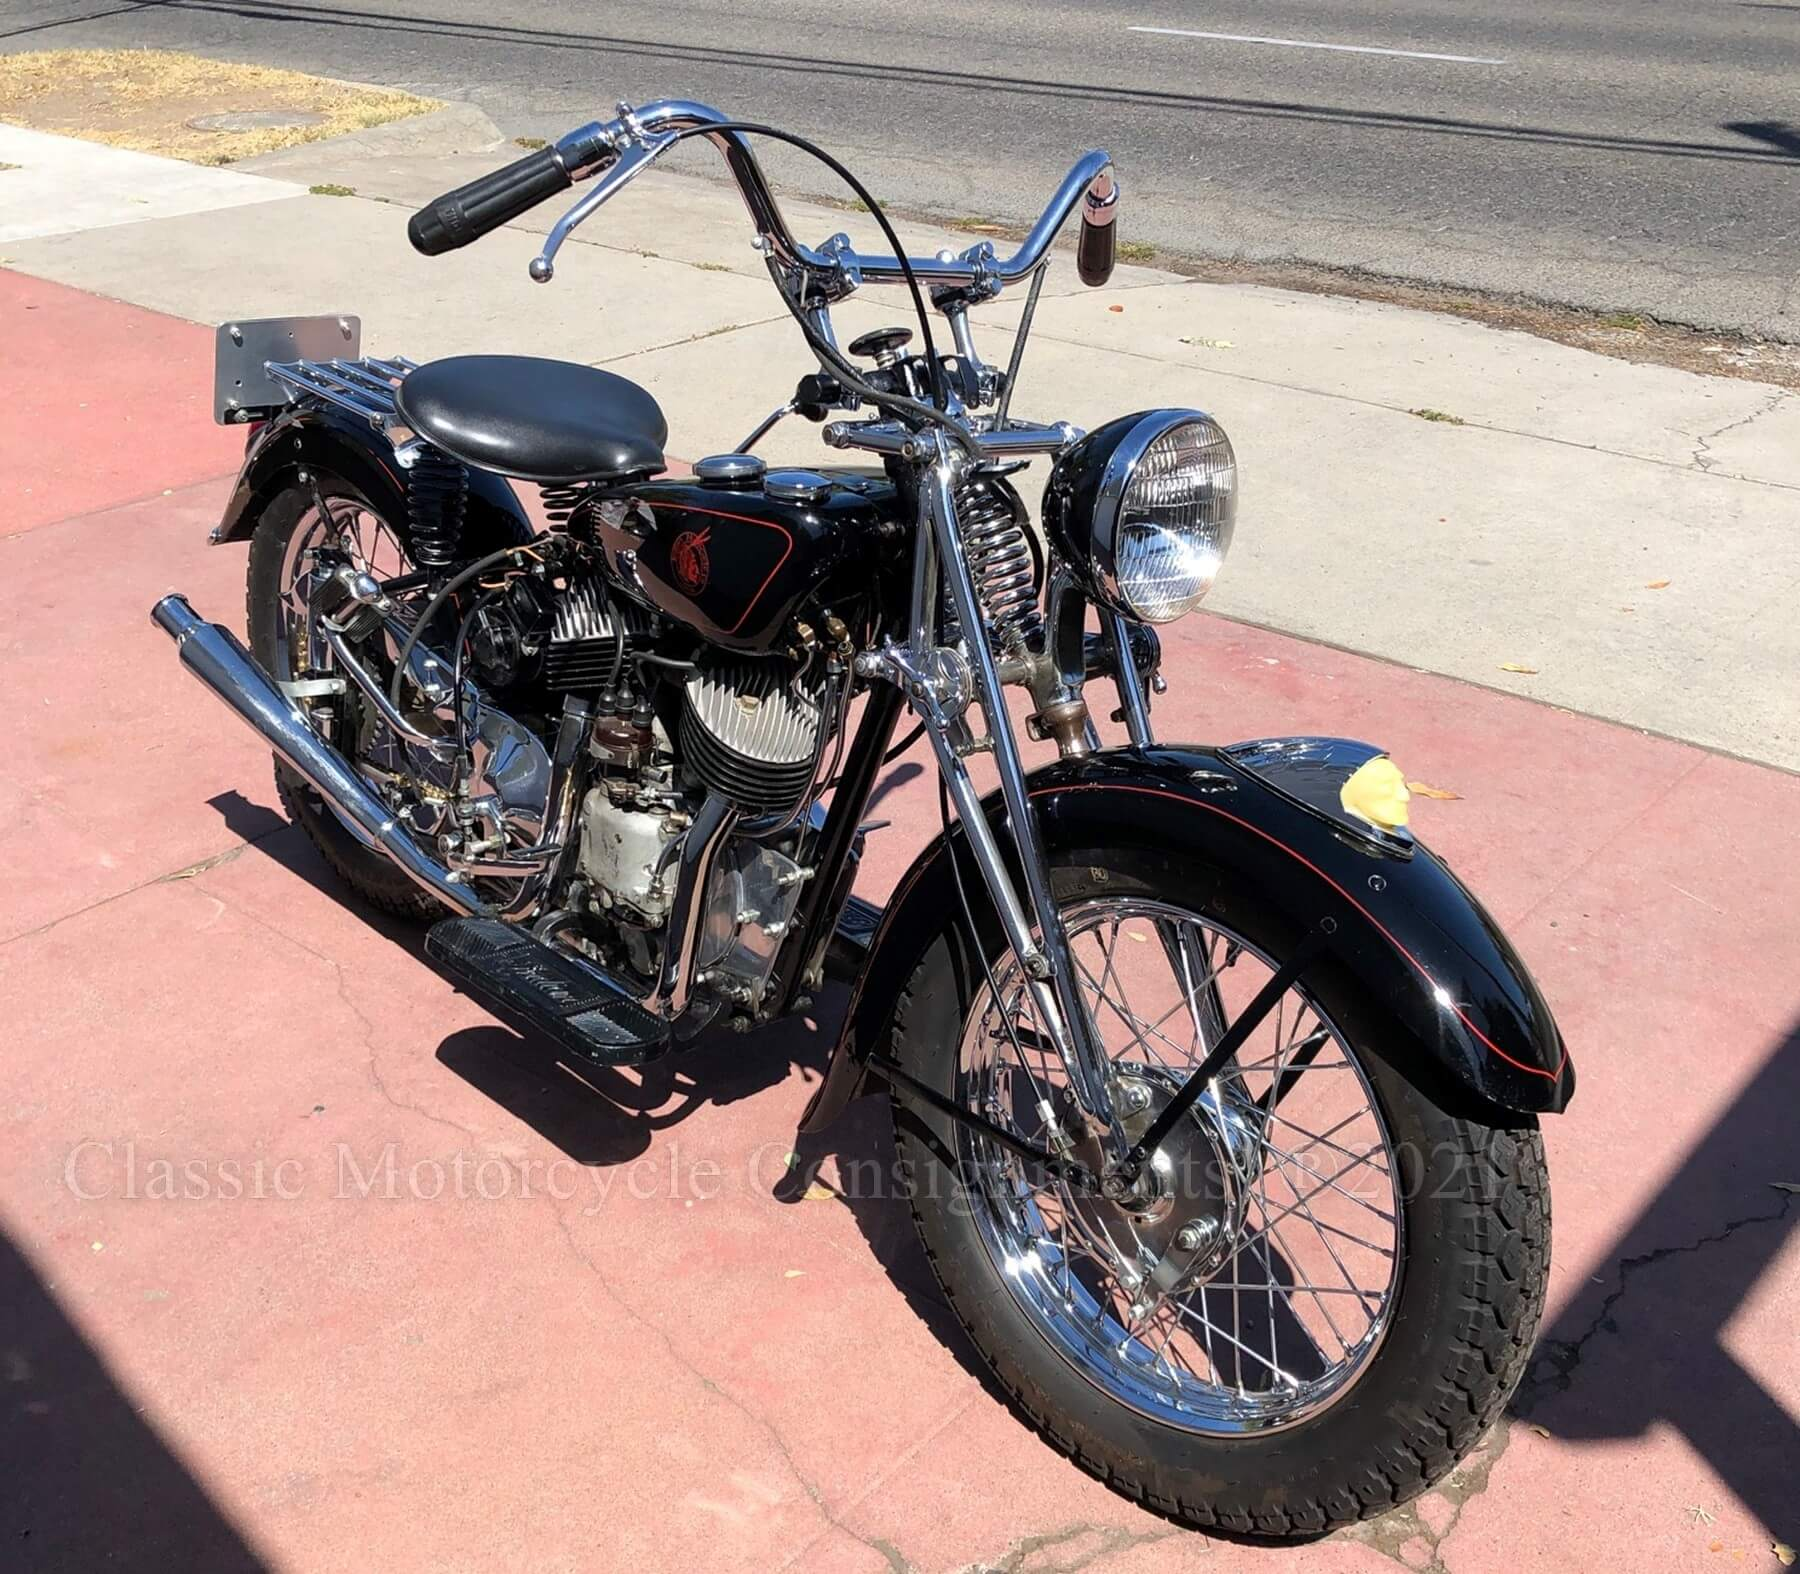 1968 Indian Scout – American Indian Motorcycle Co. – Sammy Pierce